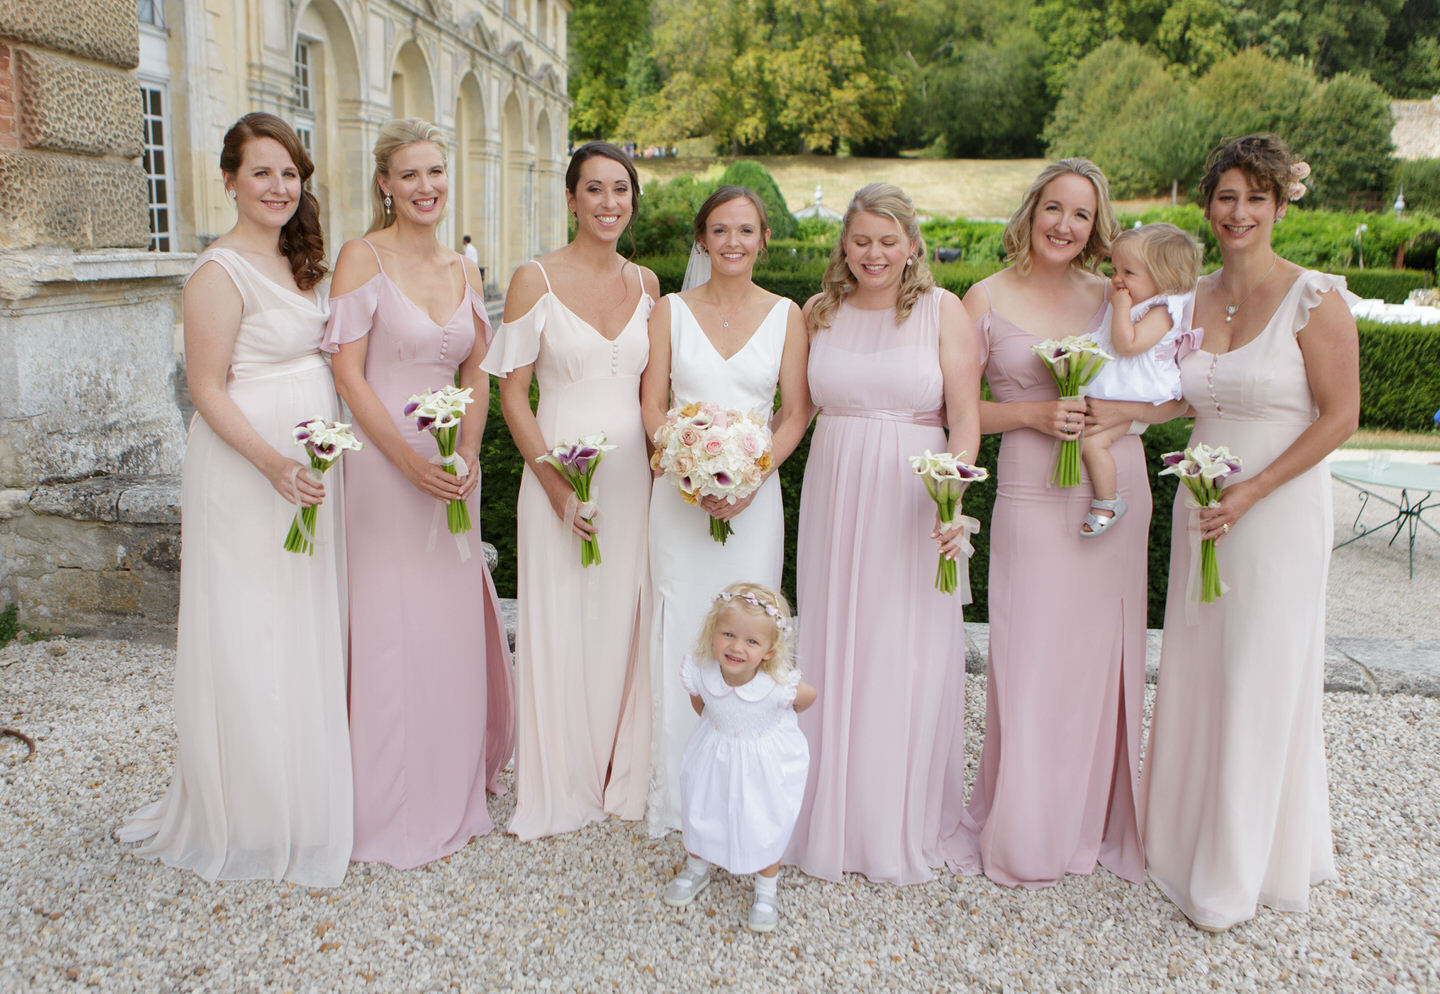 chateau wedding French countryside French wedding Bridal party flower girl